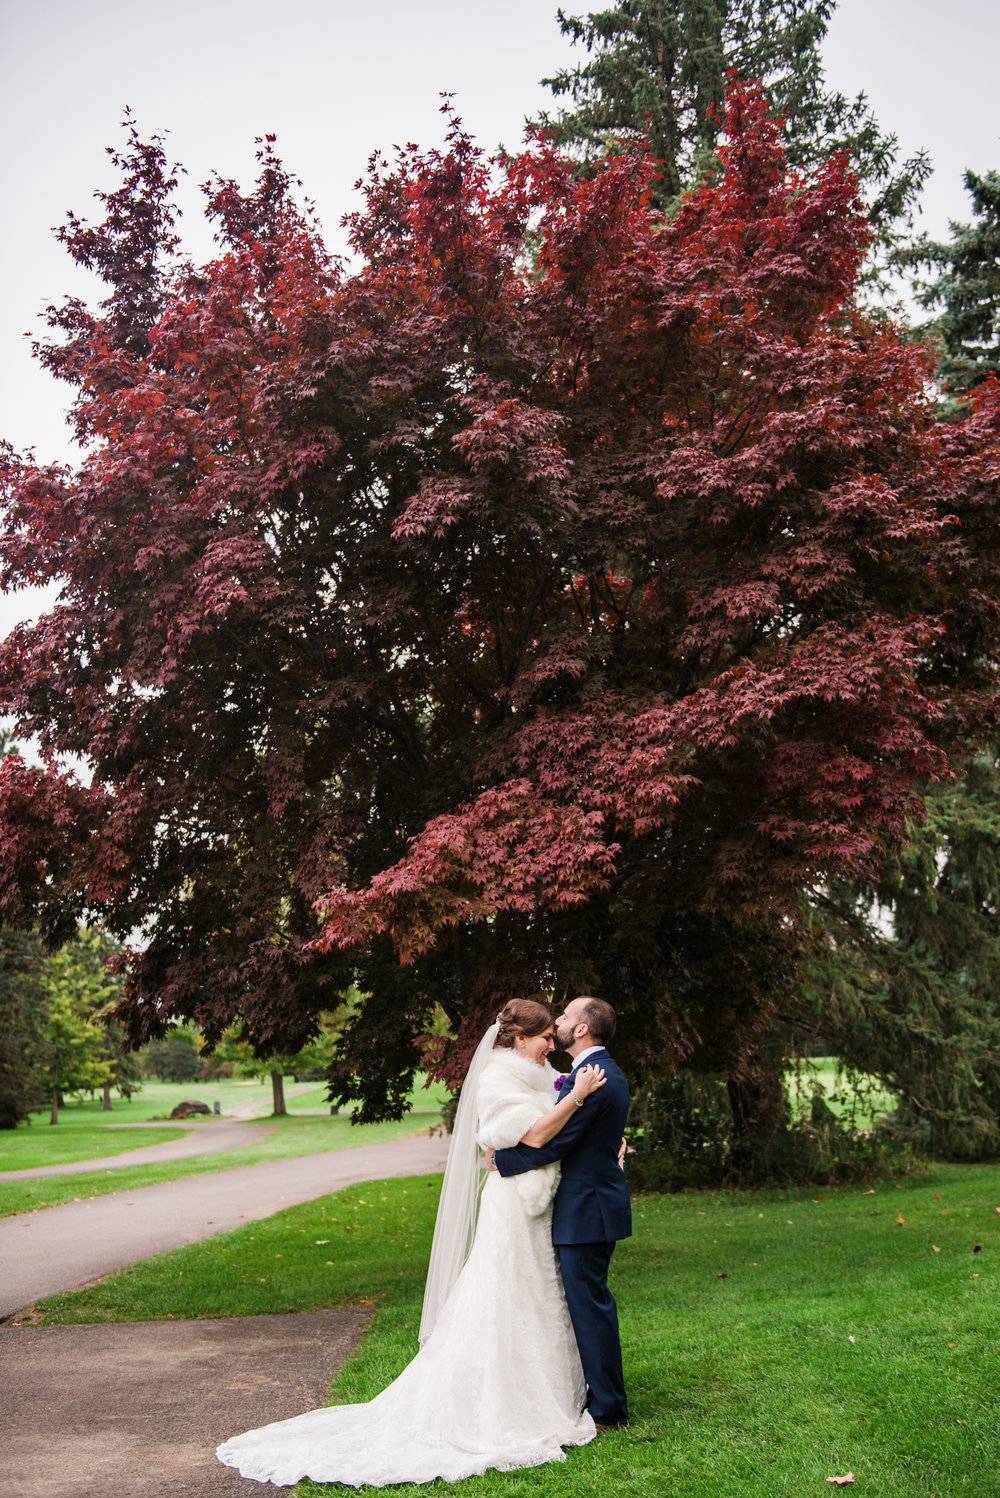 Shadow_Lake_Rochester_Wedding_JILL_STUDIO_Rochester_NY_Photographer_DSC_6050.jpg